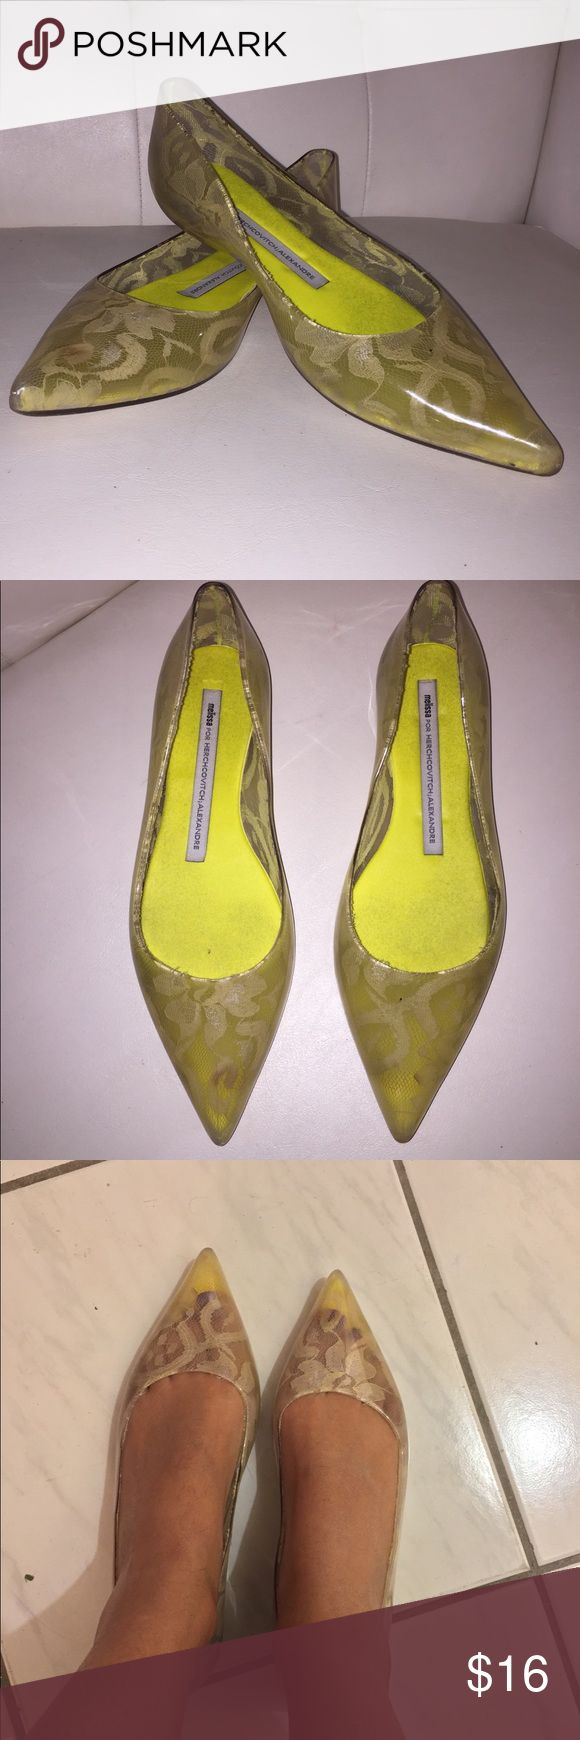 MELISSA flats Used condition size 7 Melissa Shoes Flats & Loafers